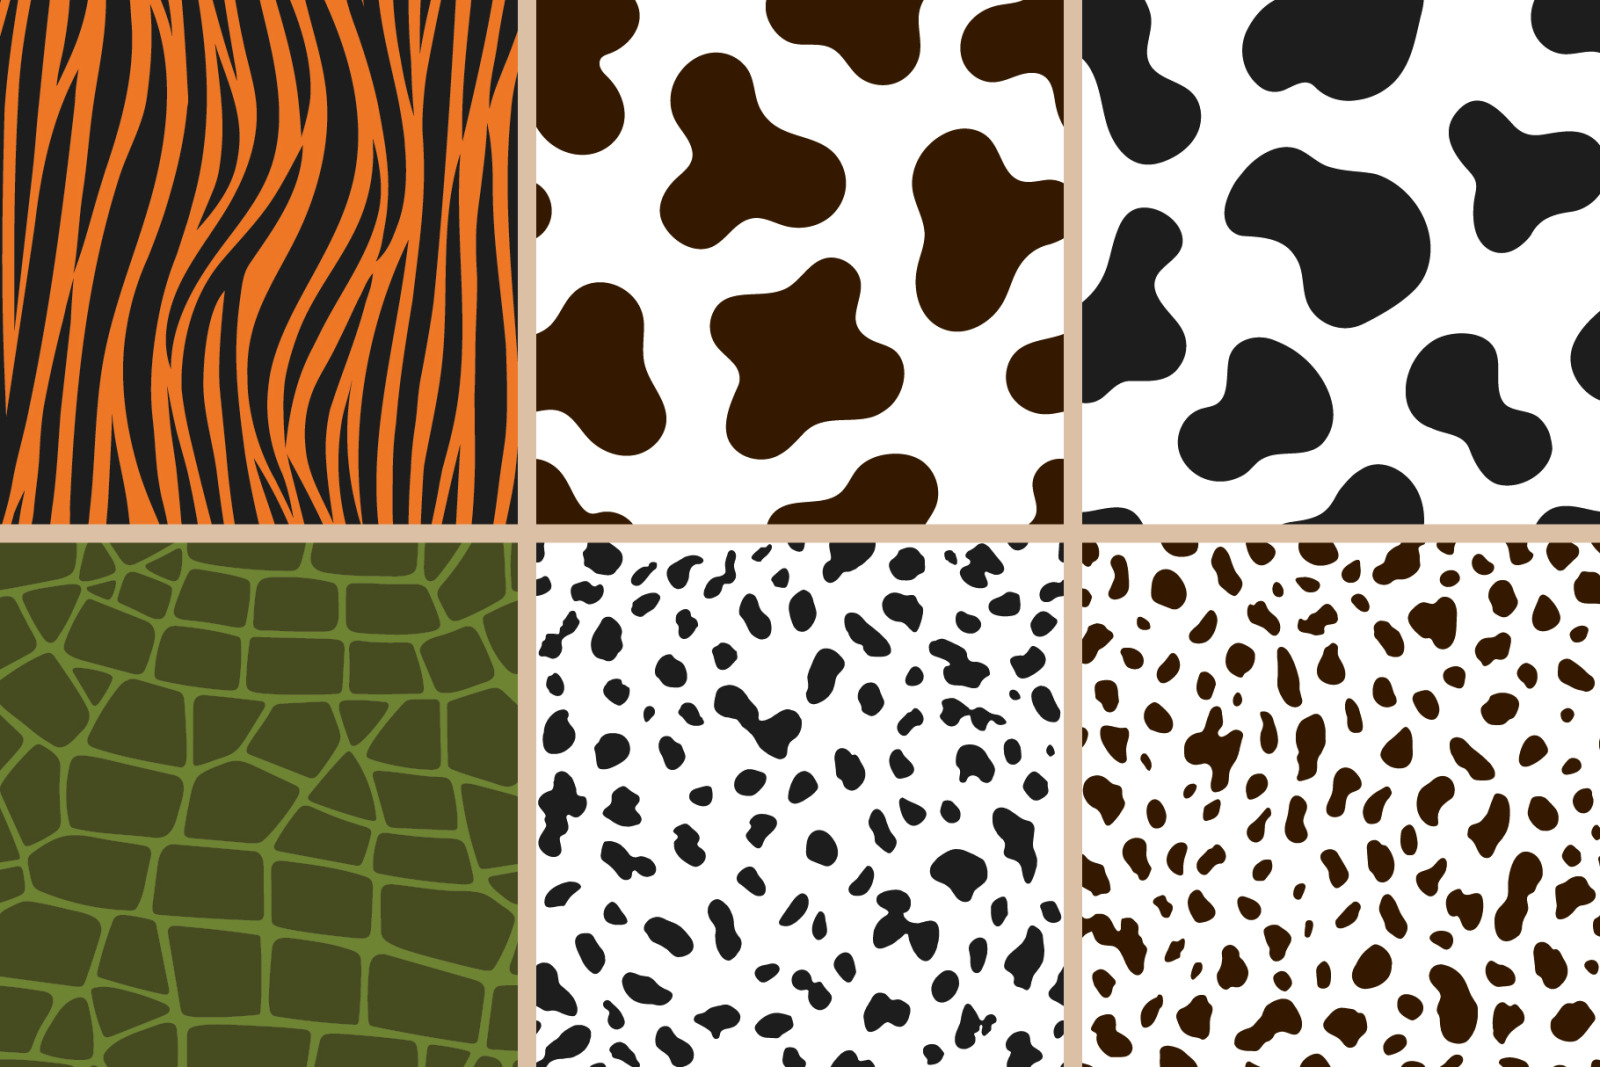 Animal Print Seamless Patterns